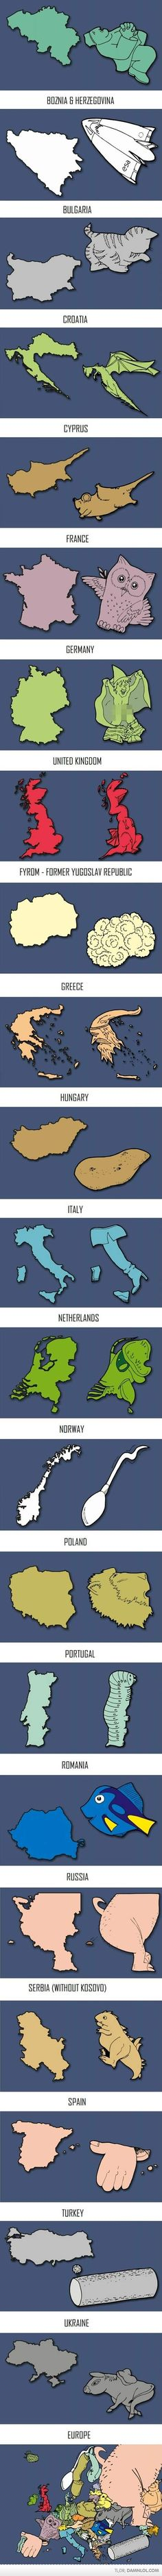 Funny pictures about Europe according to creative people. Oh, and cool pics about Europe according to creative people. Also, Europe according to creative people. Teaching Geography, World Geography, Geography Lessons, Teaching Kids, Best Funny Pictures, Funny Images, Funny Pics, Fail Pictures, Hilarious Stuff